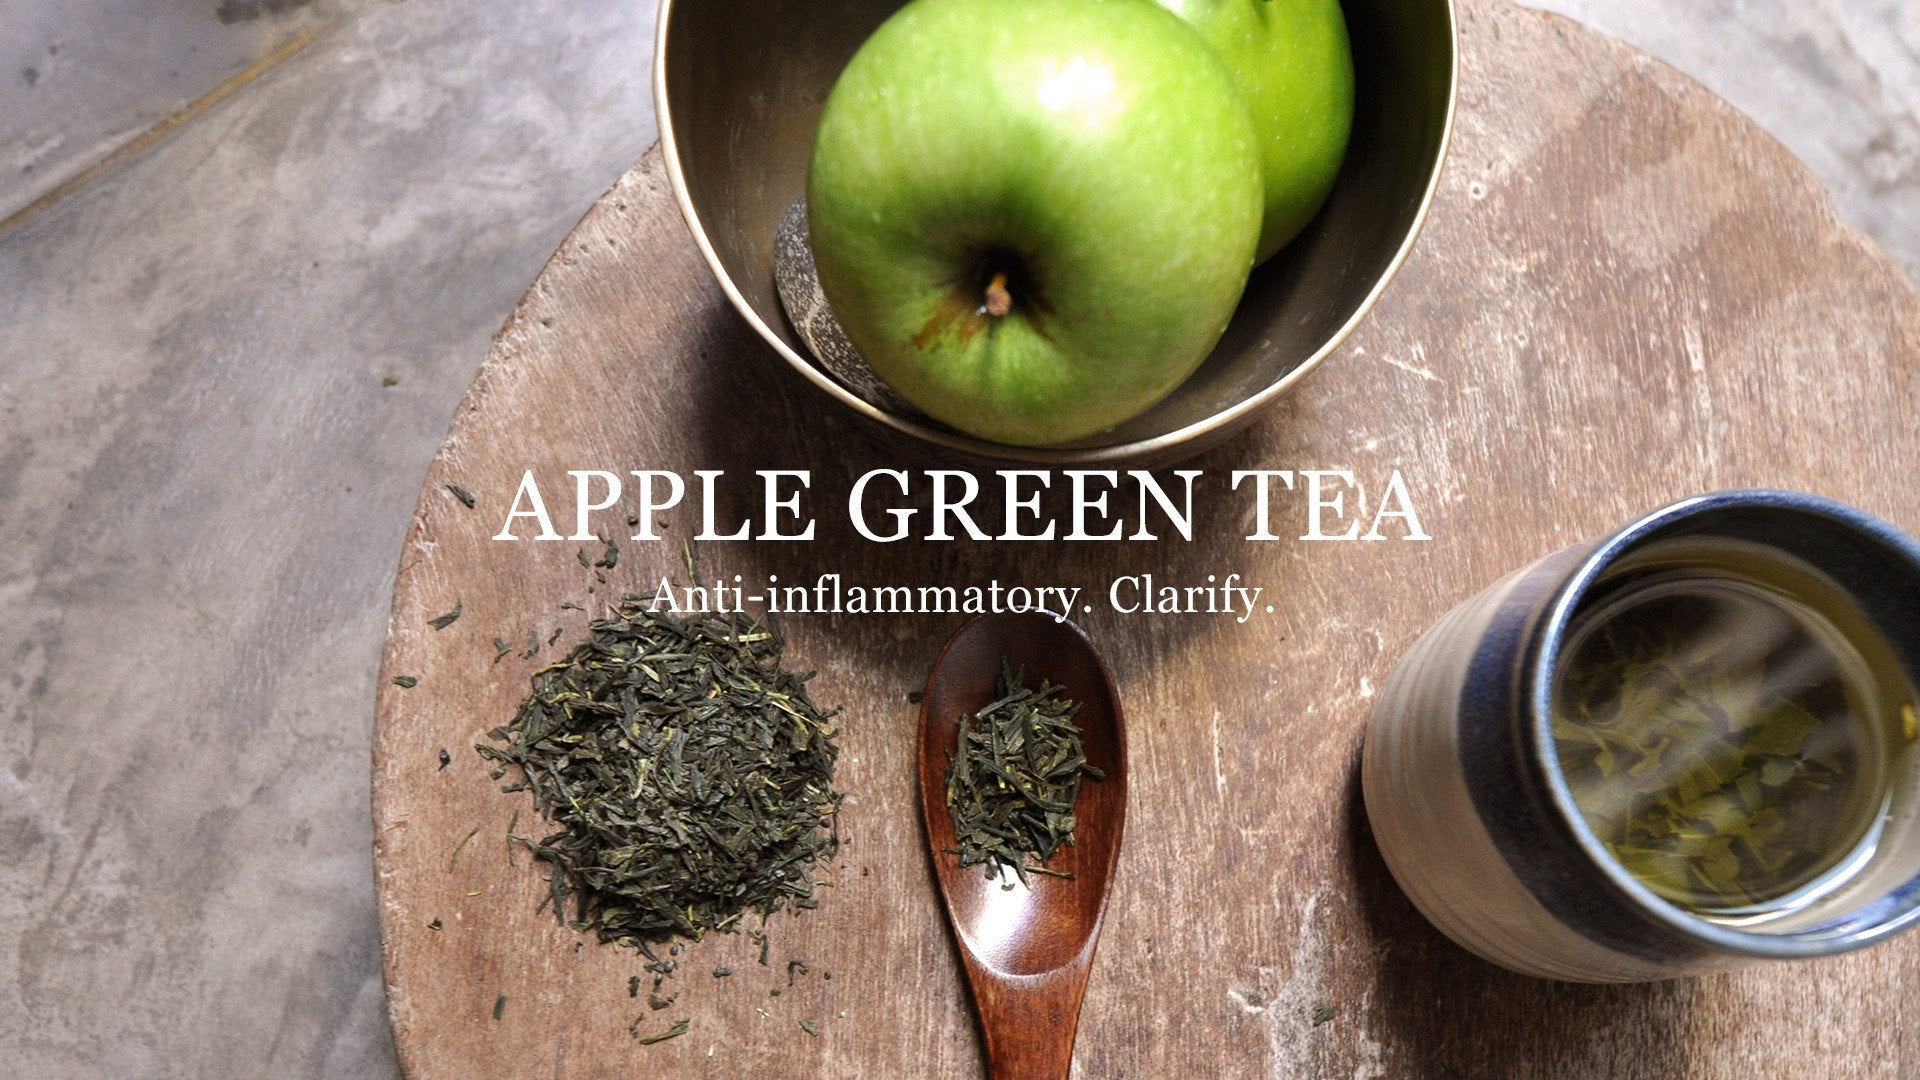 Banyan Tree Apple Green Tea Collection